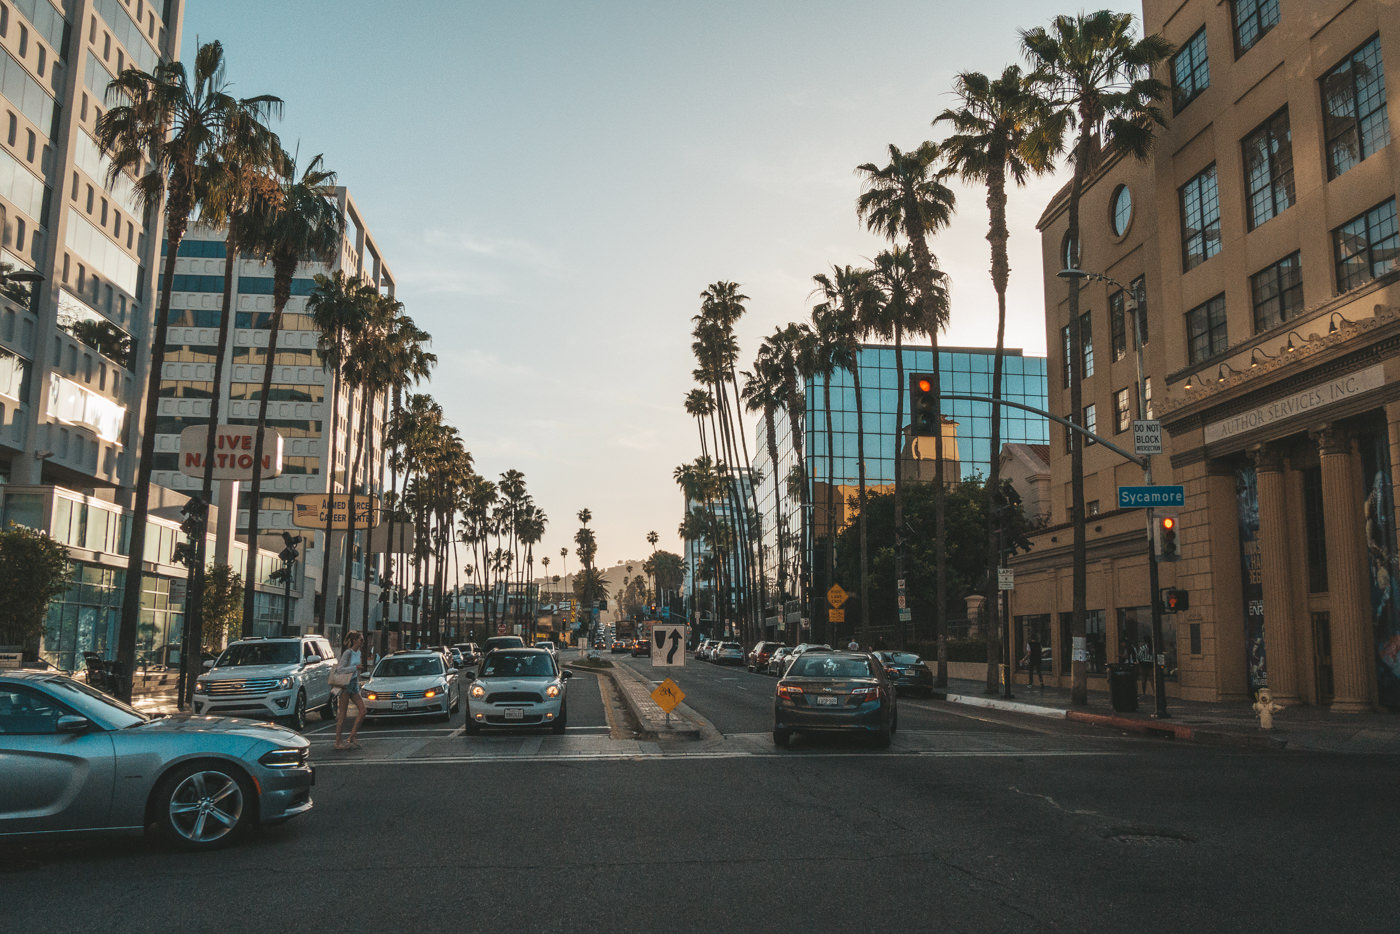 Straße in Los Angeles